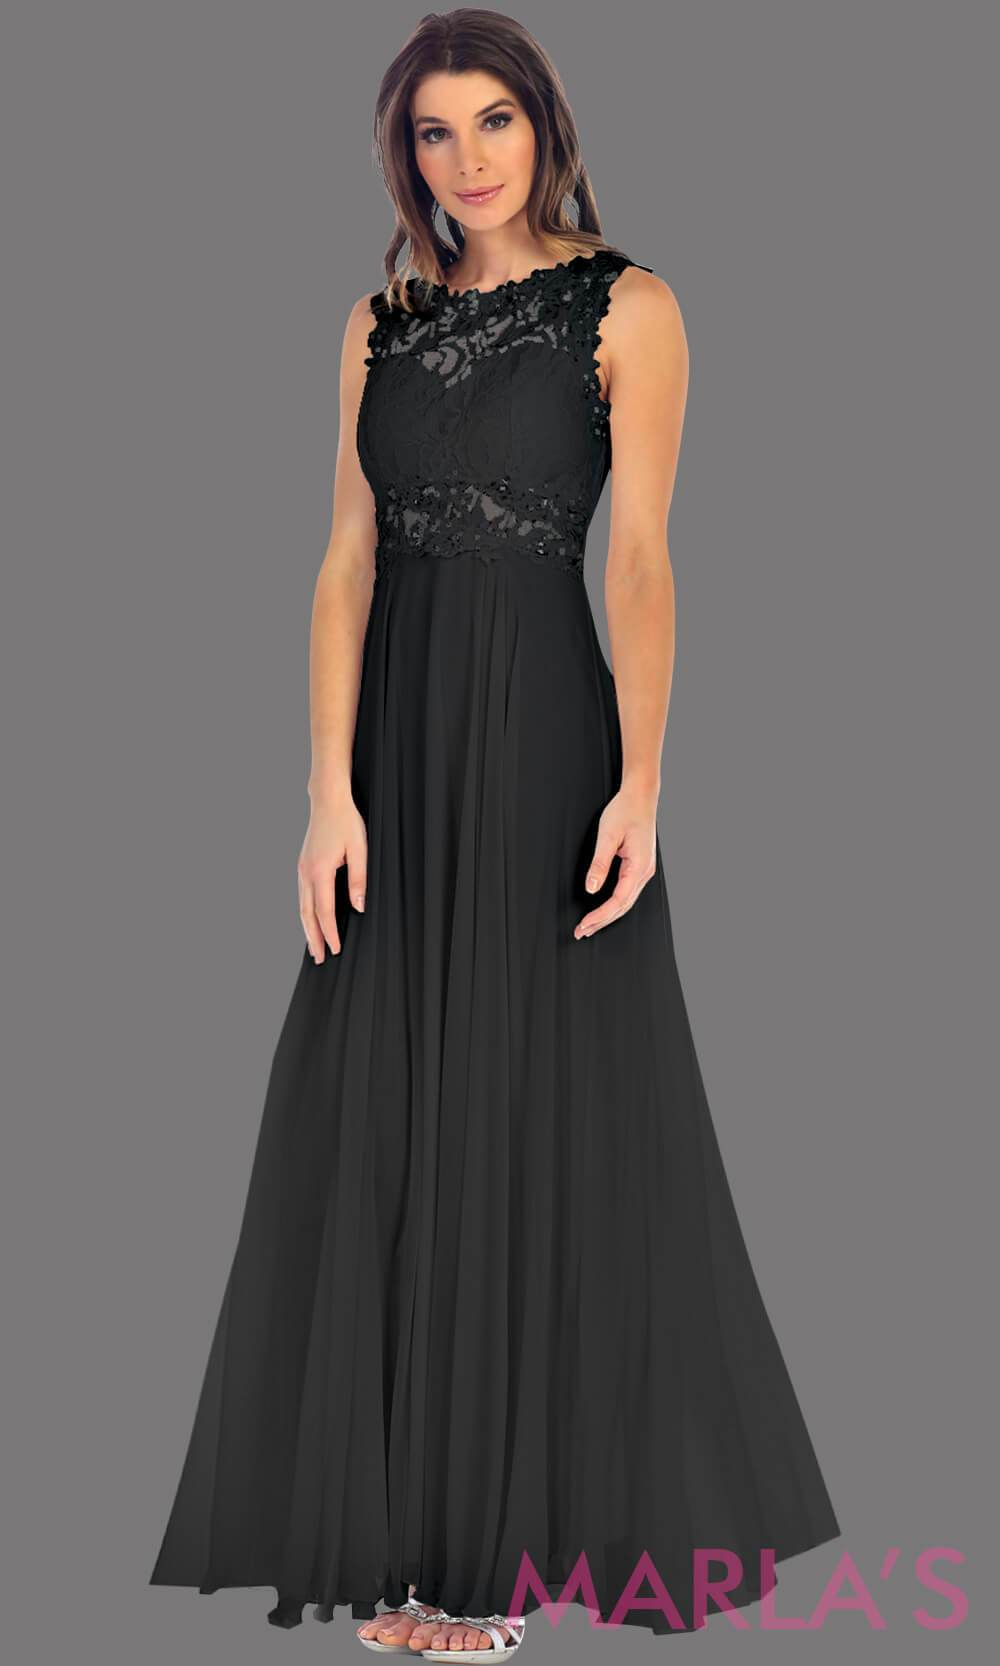 Long white simple flowy dress marlasfashions 101610l long black flowy dress with high neck the lace bodice flows into a flowy chiffon ombrellifo Images